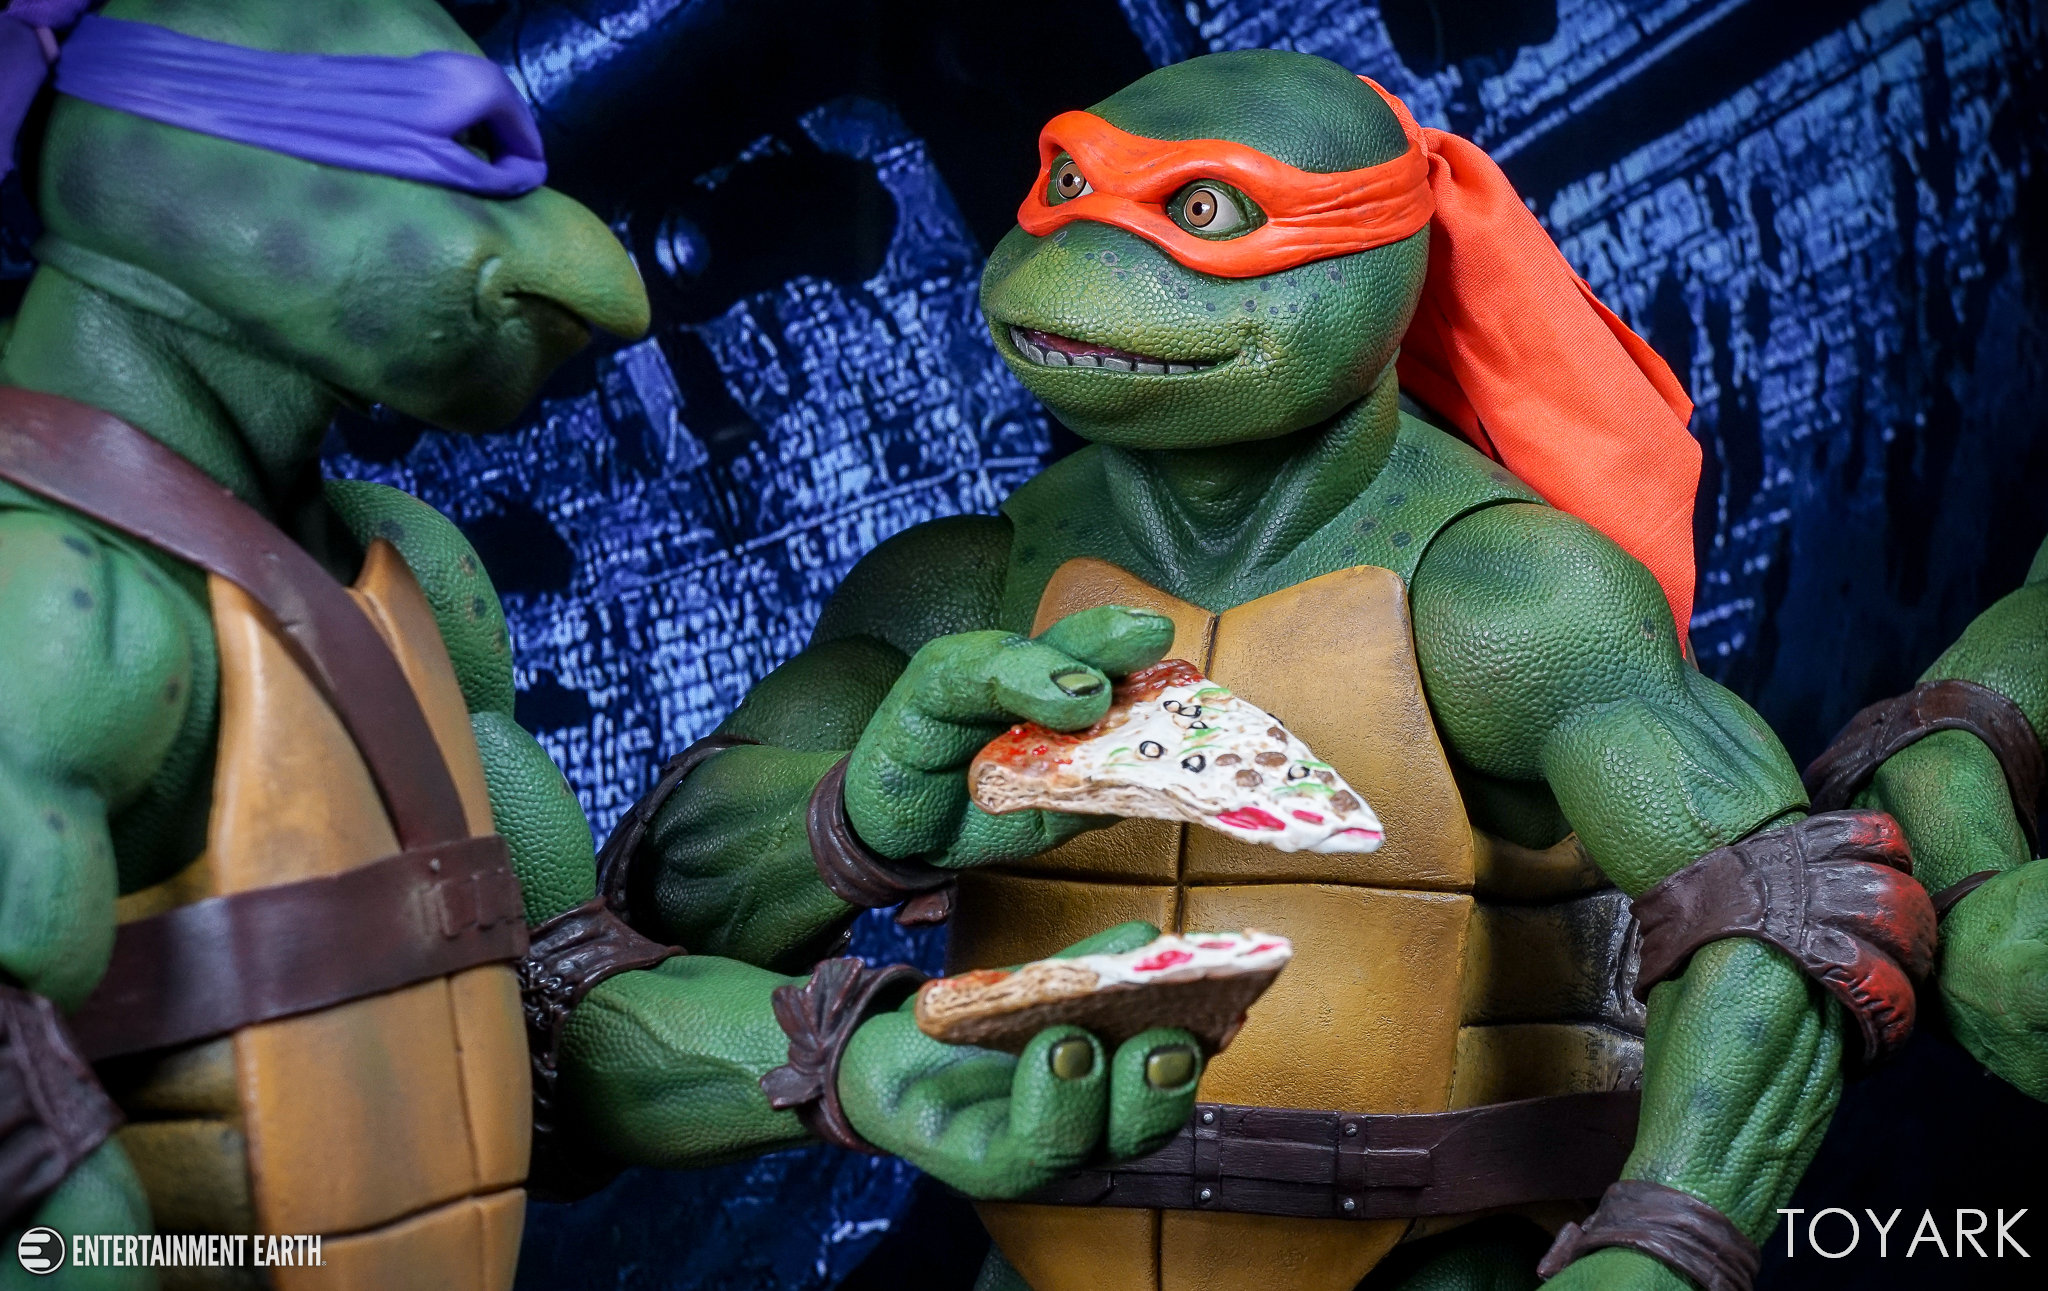 http://news.toyark.com/wp-content/uploads/sites/4/2017/10/NECA-Quarter-Scale-TMNT-Michelangelo-032.jpg